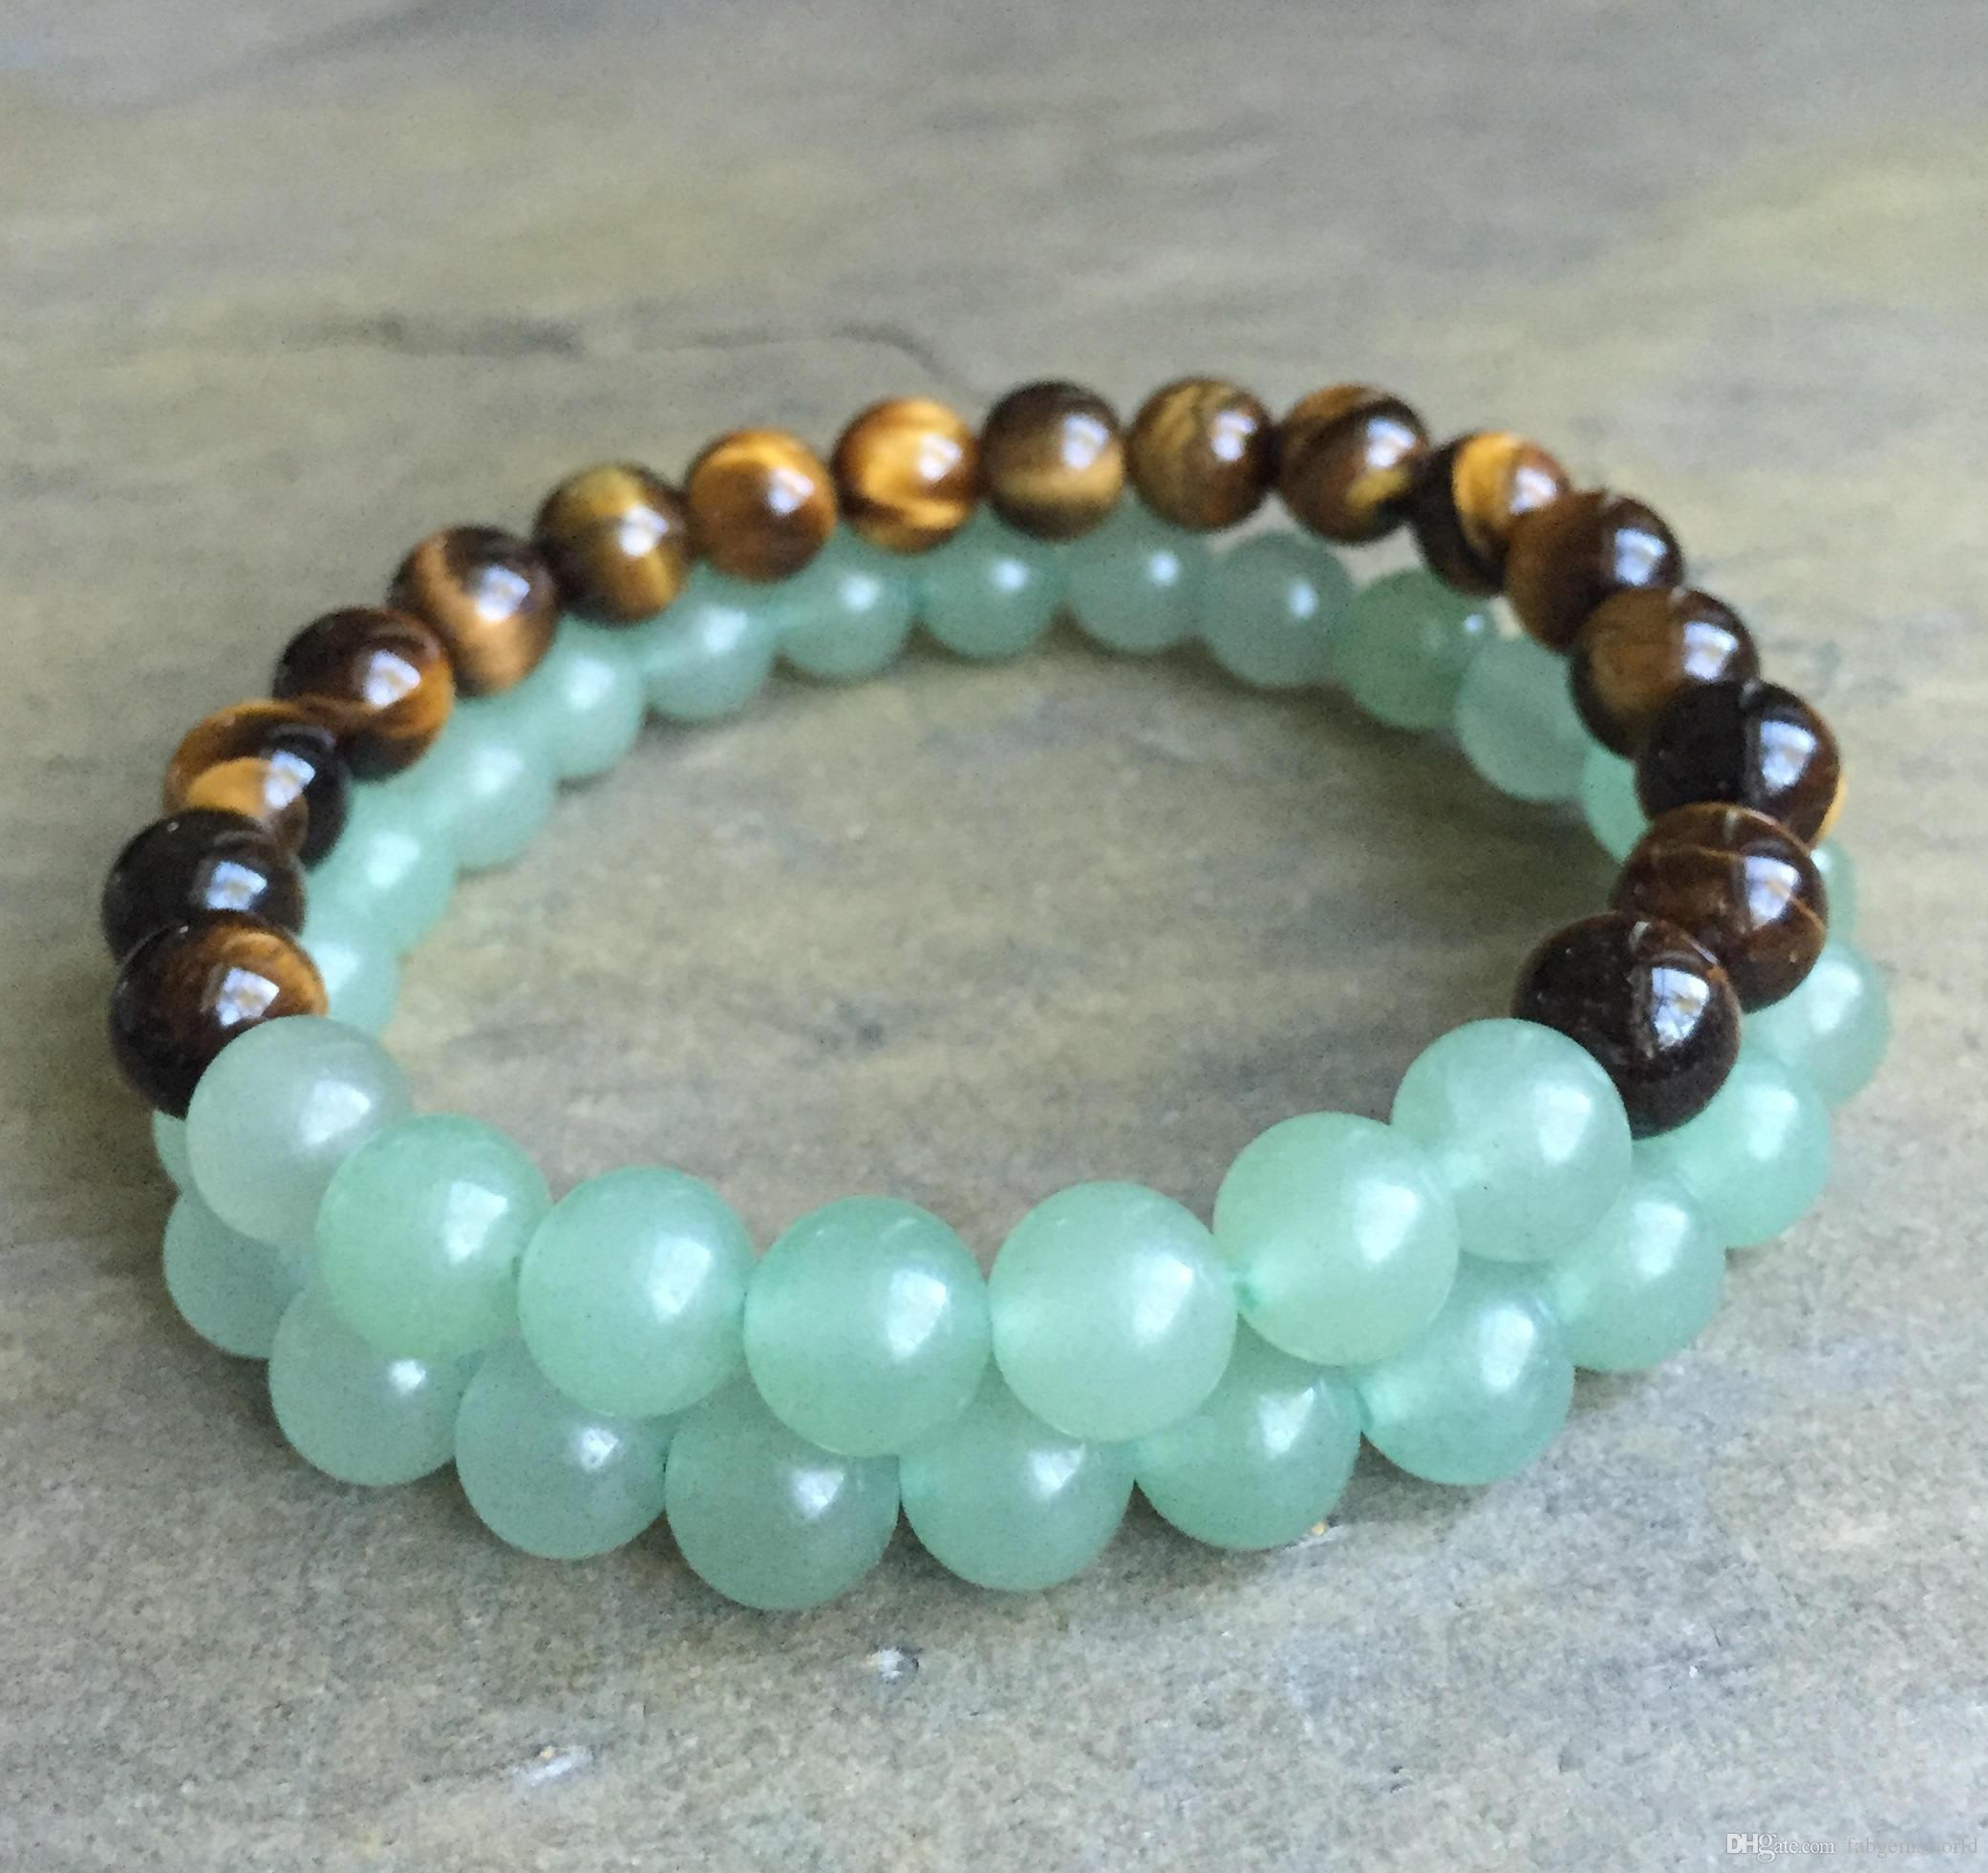 color and copper glass elastic bead etsy clearskydesignsshop pearls acrylic bracelet green on by sparkle dark pin beads drop gum with